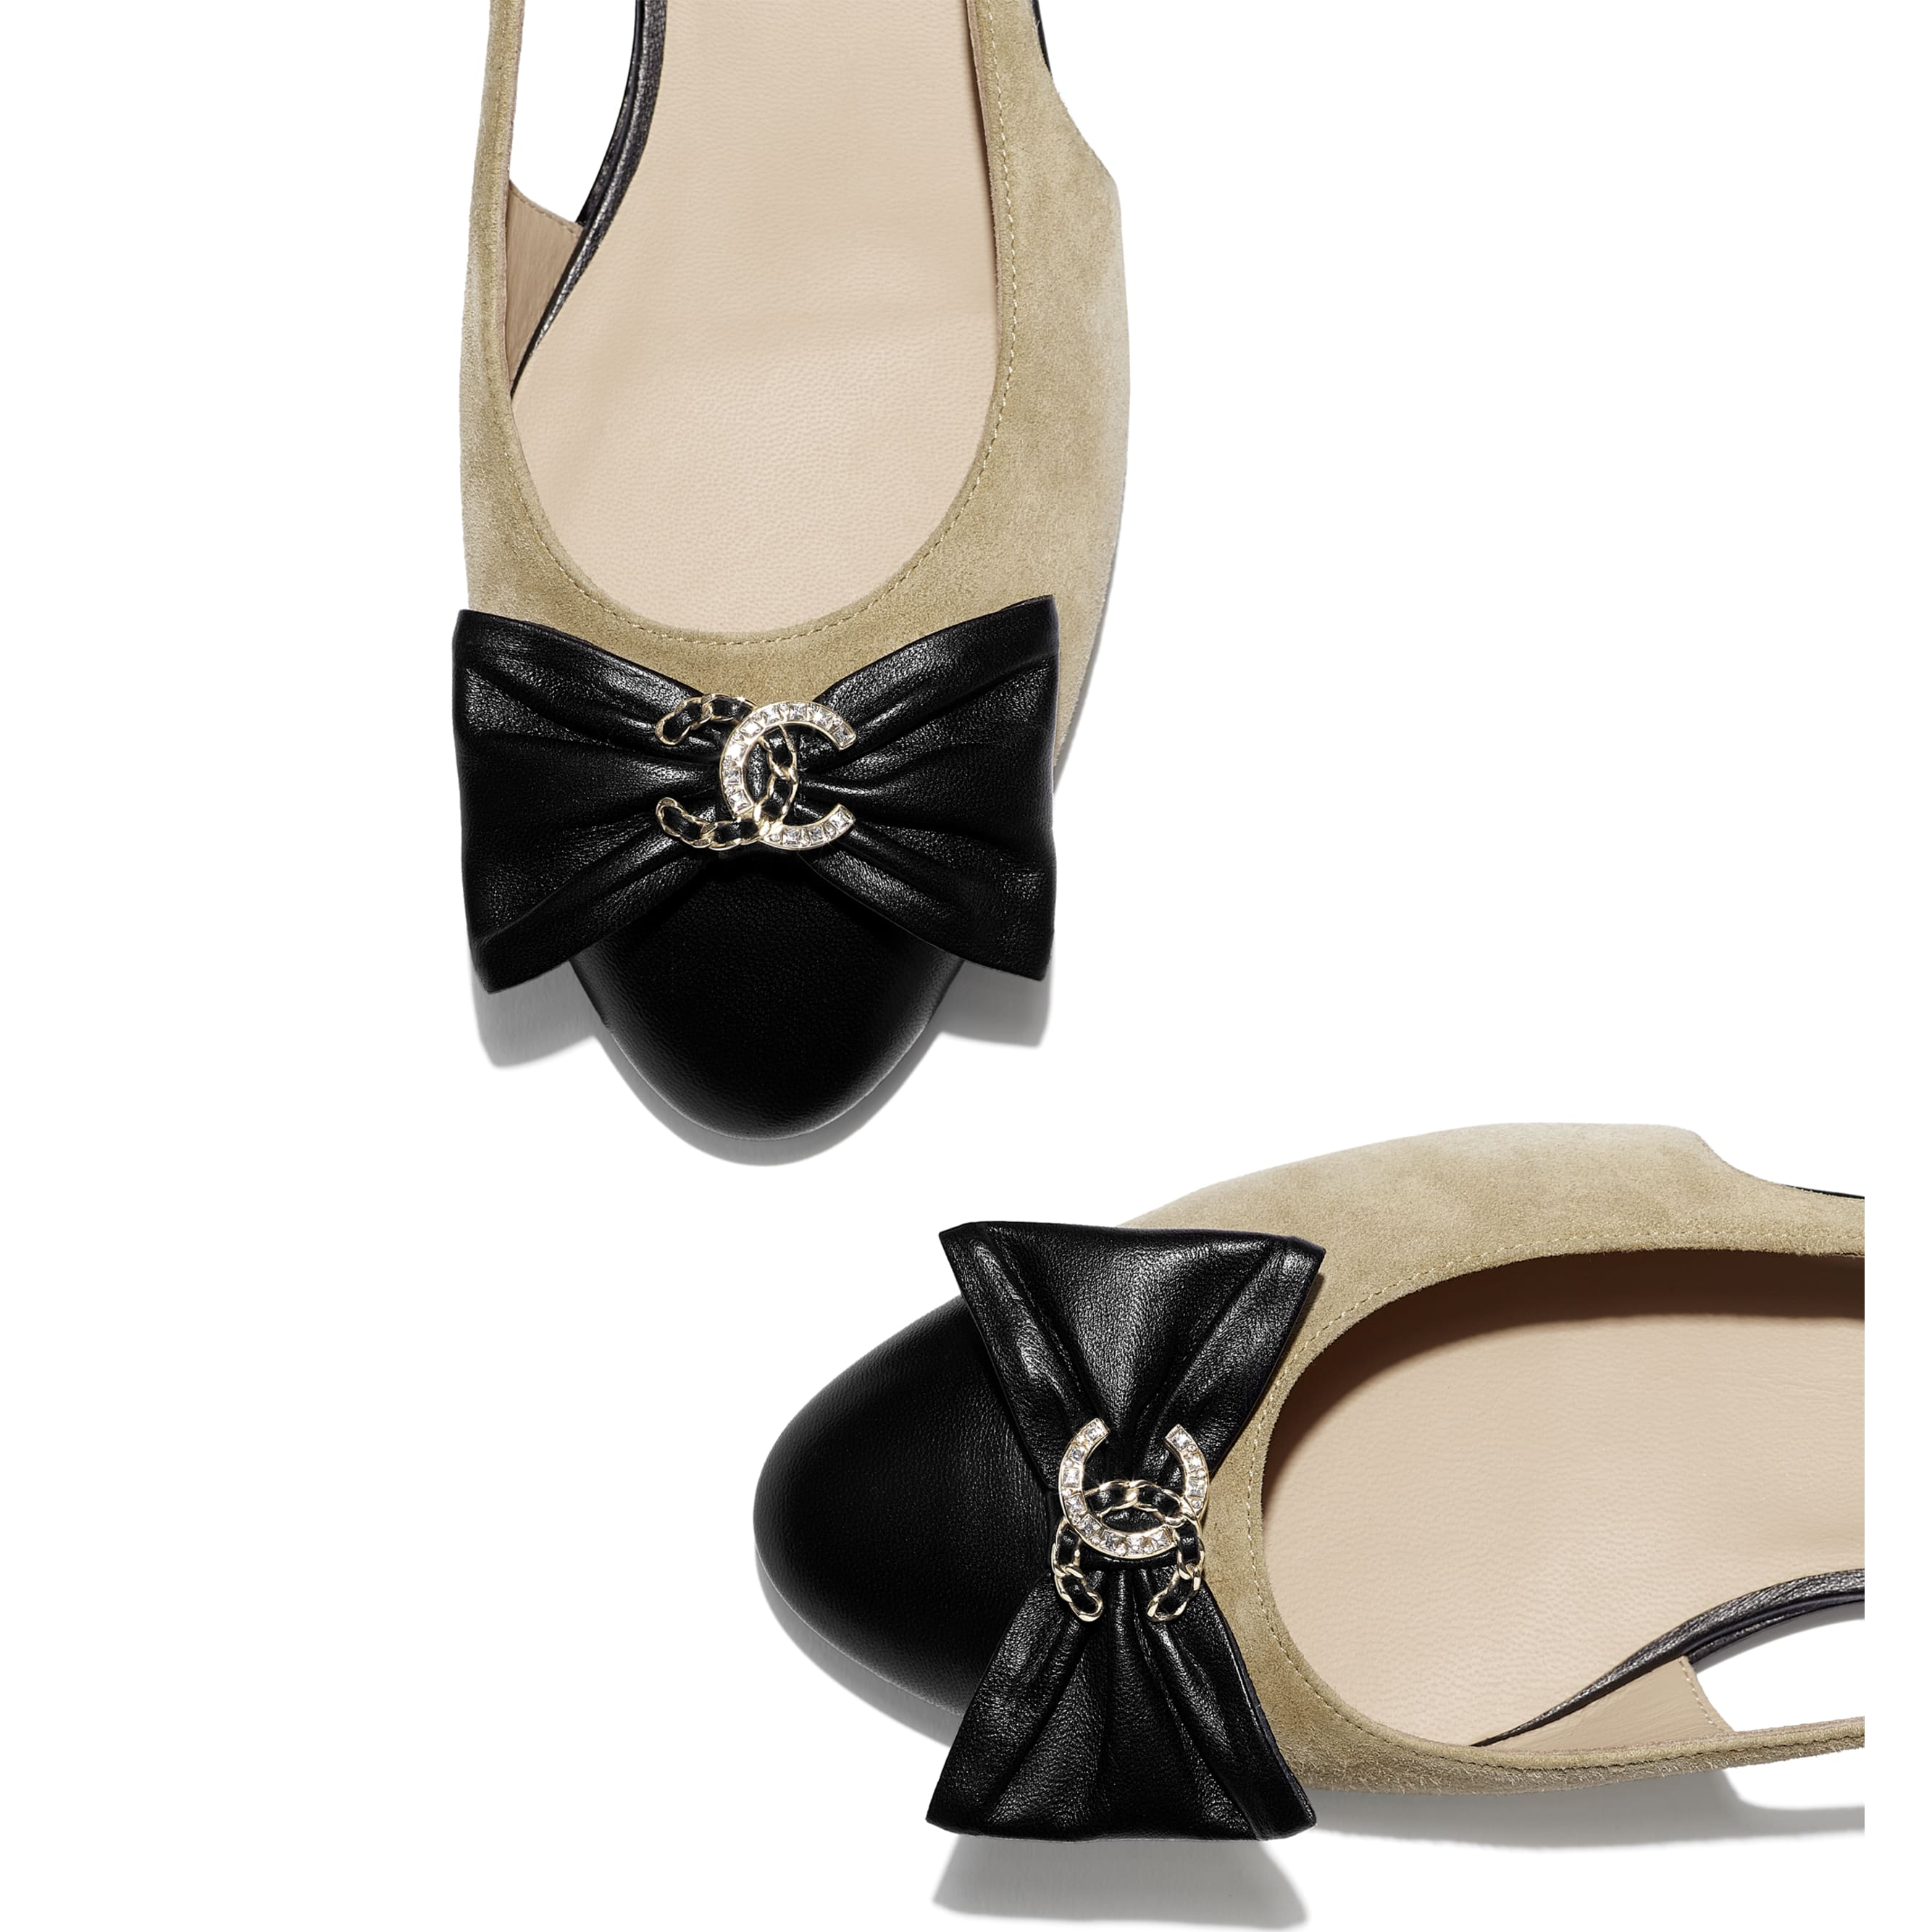 Flats - Beige & Black - Suede Calfskin & Lambskin - CHANEL - Extra view - see standard sized version